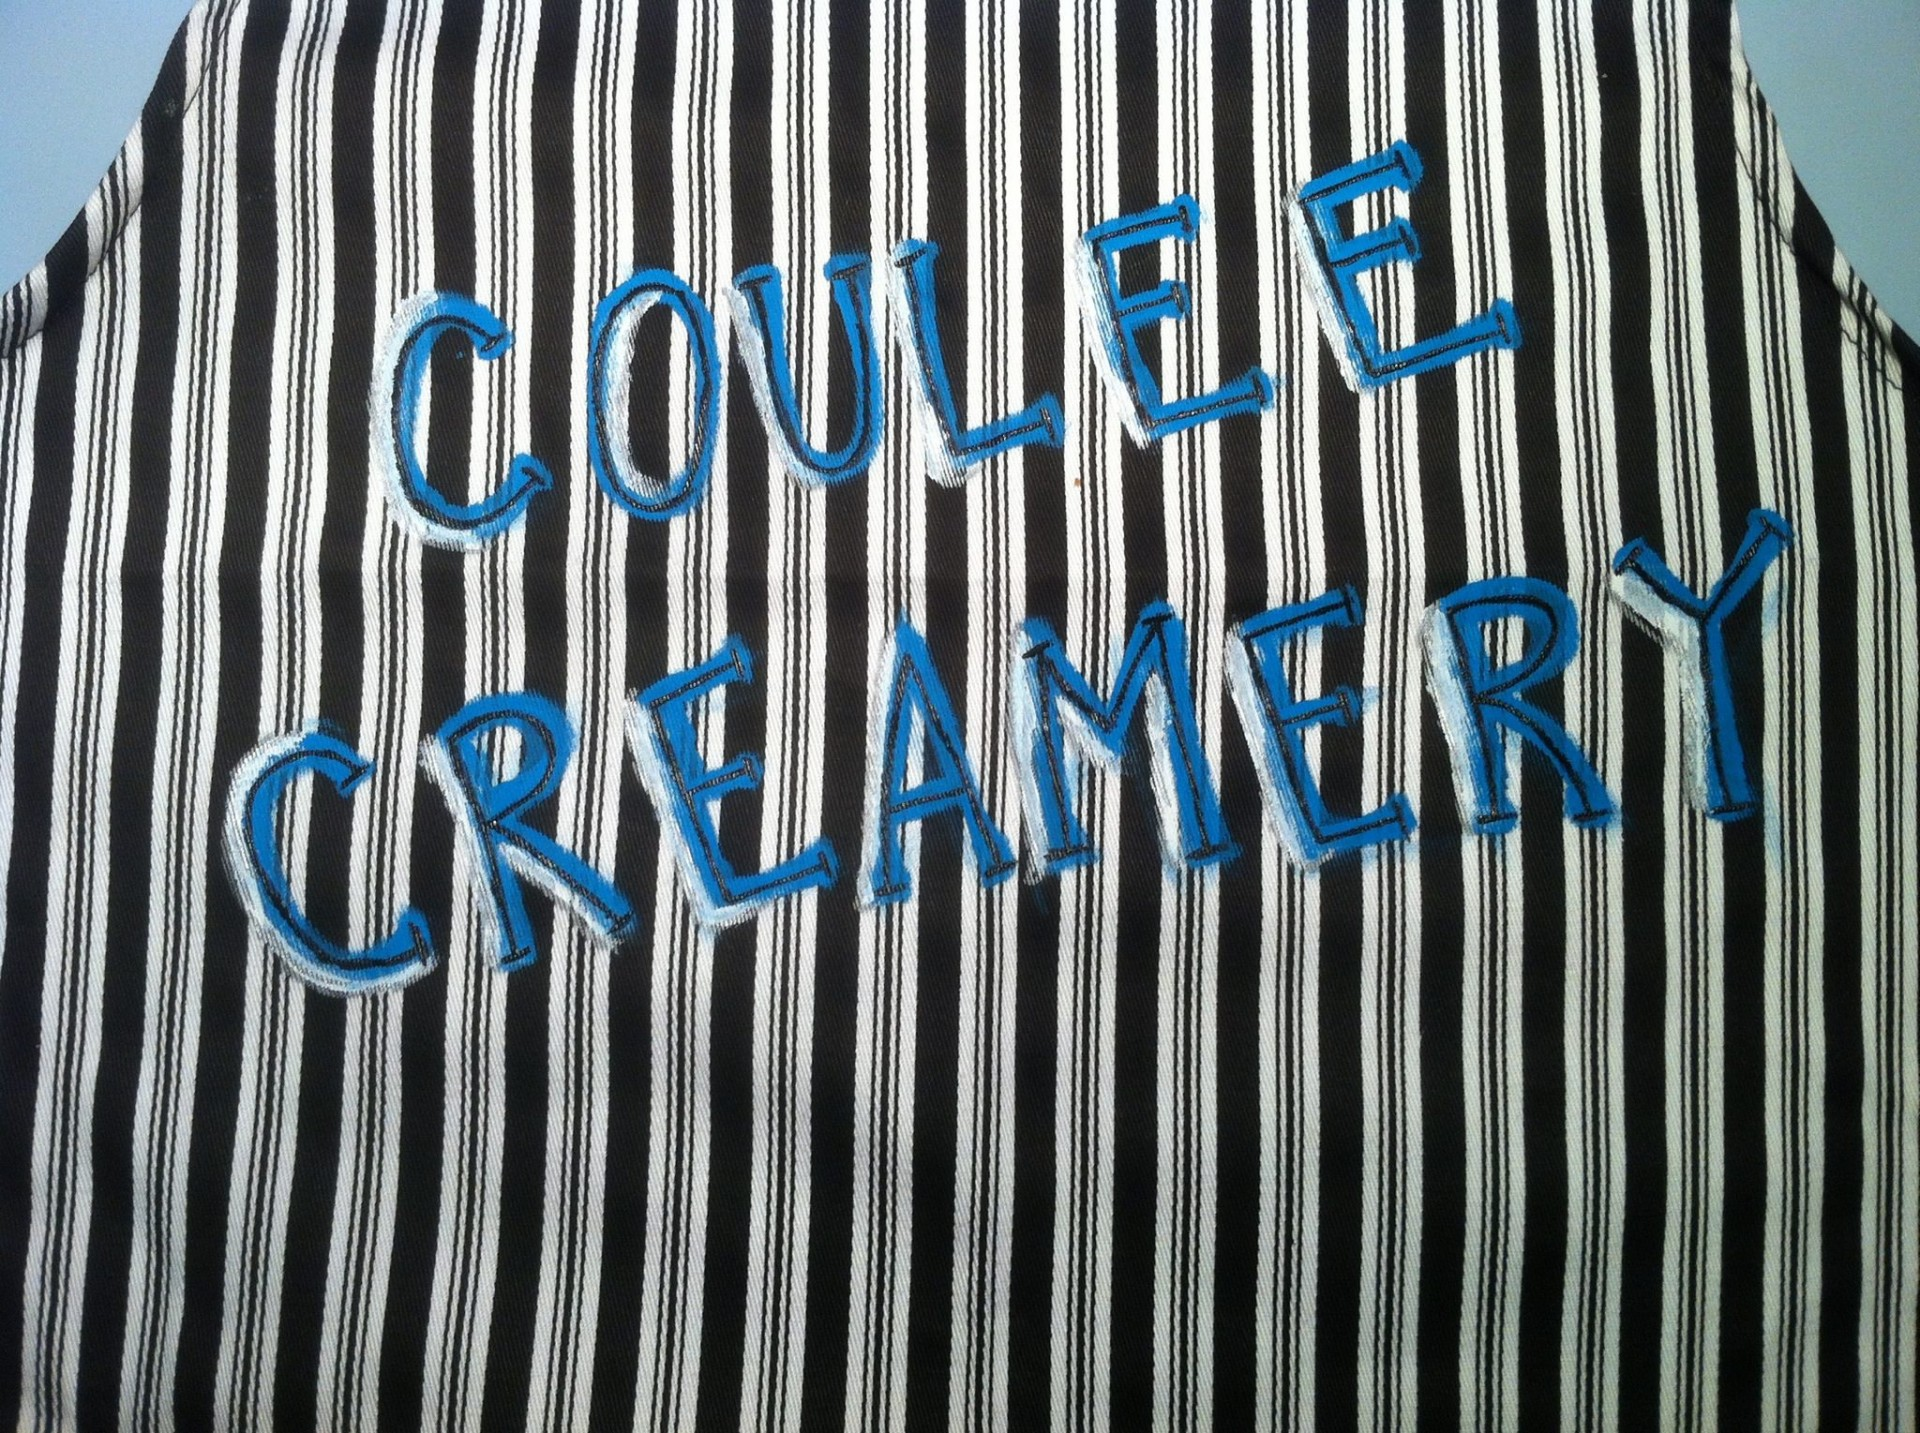 Coulee Creamery